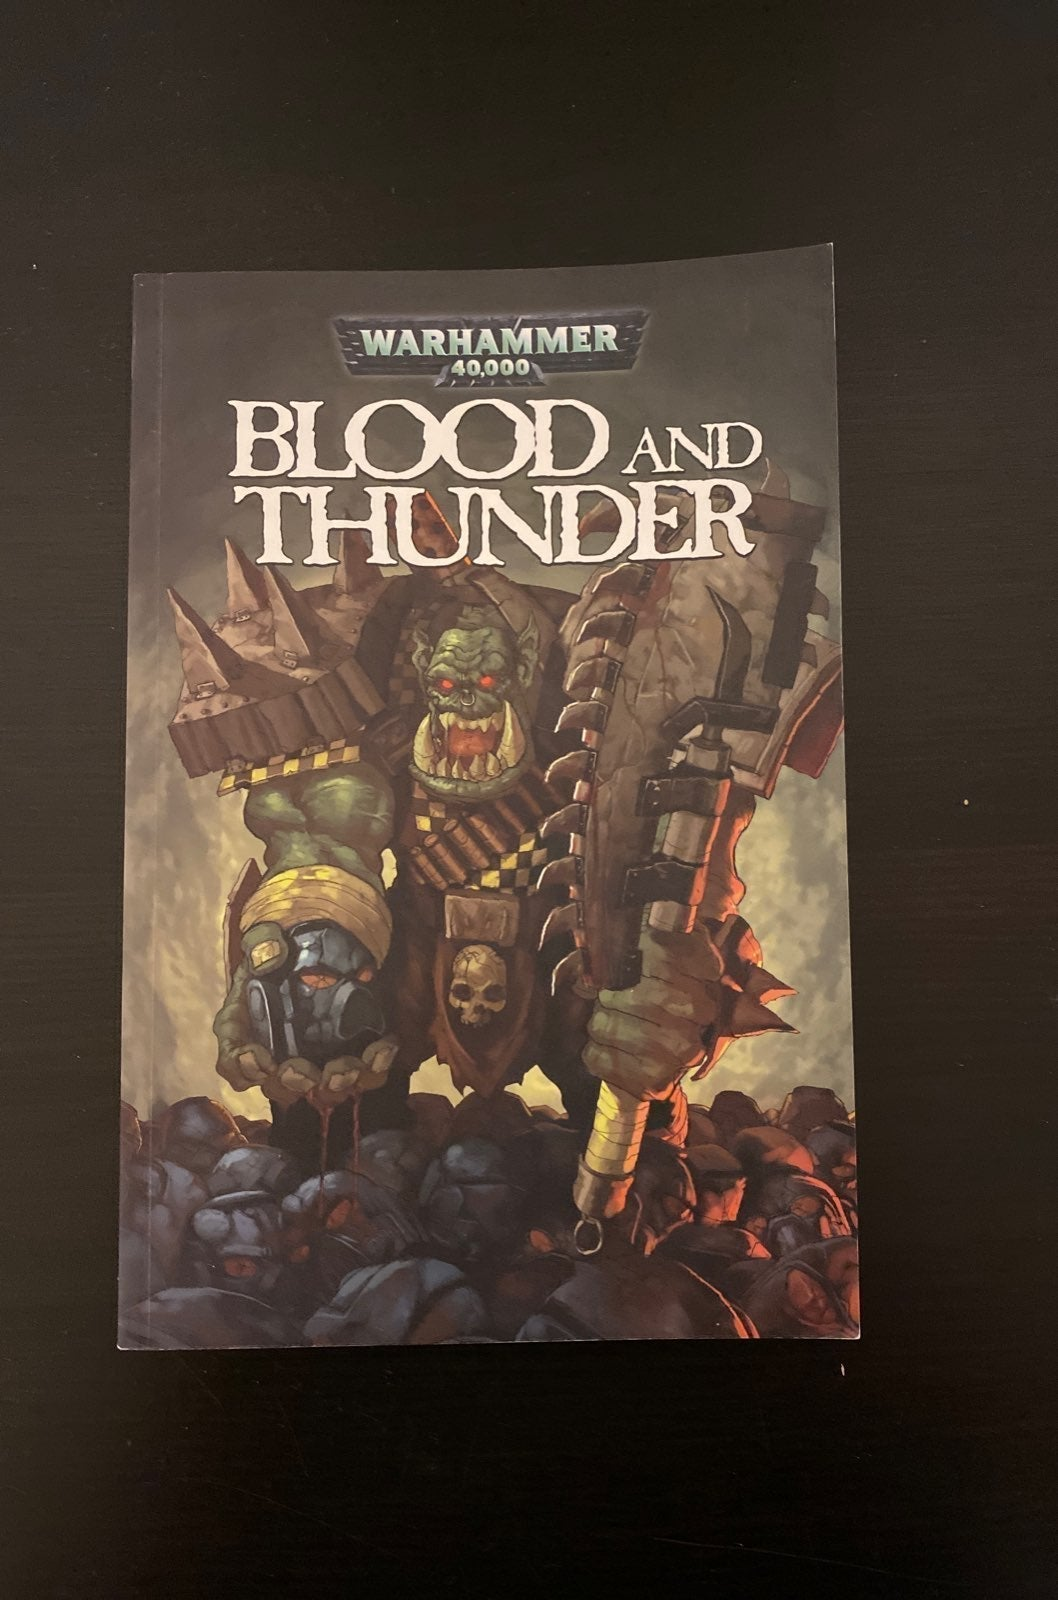 warhammer 40k, Blood and Thunder